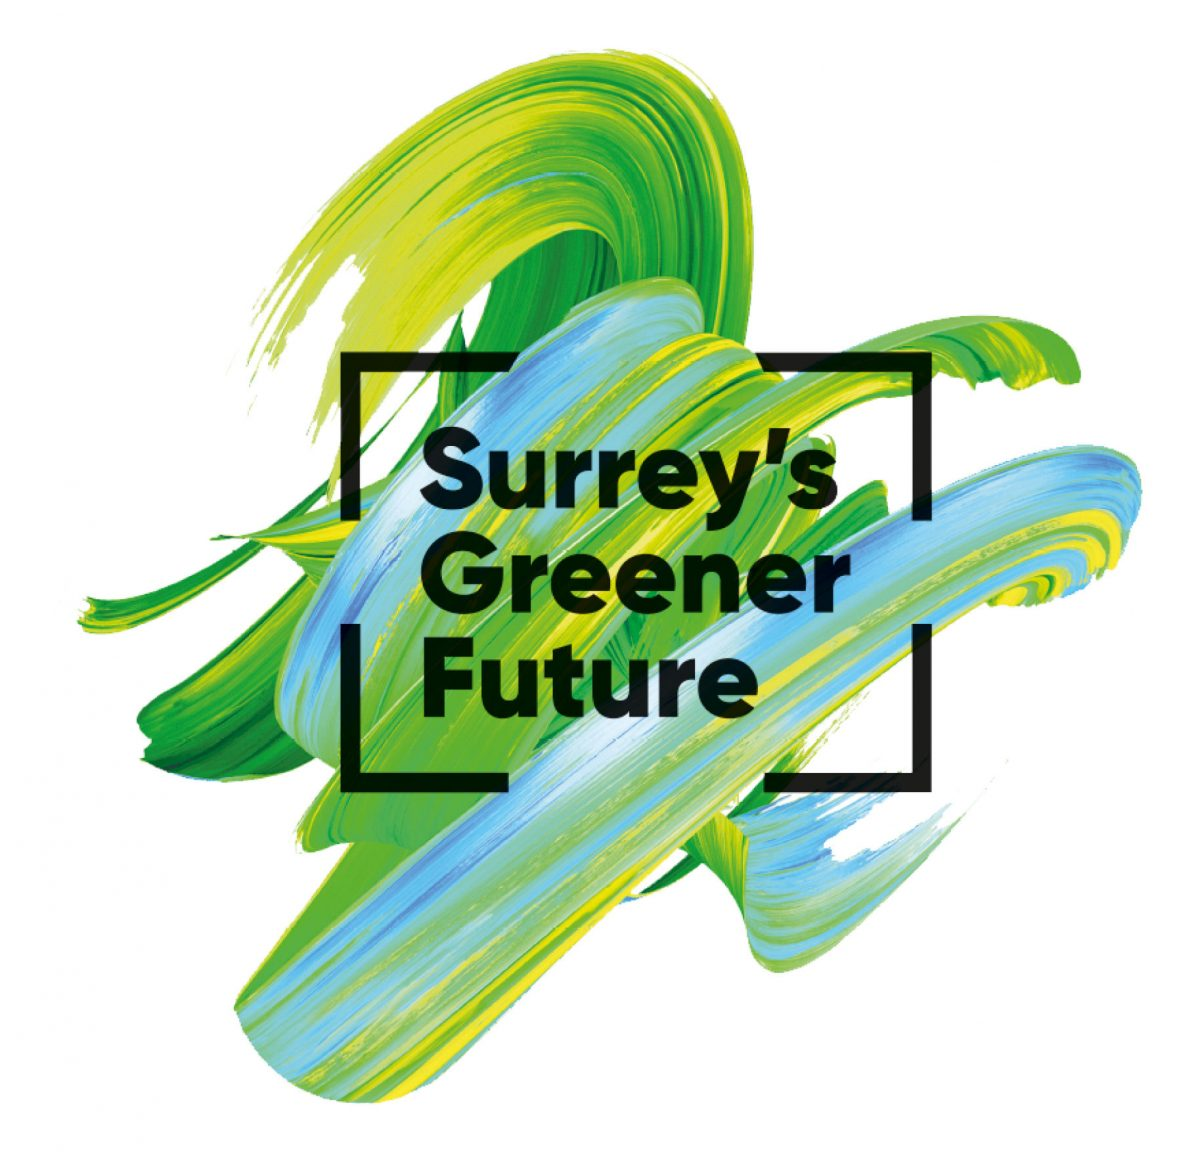 Surrey's Greener Future (5)